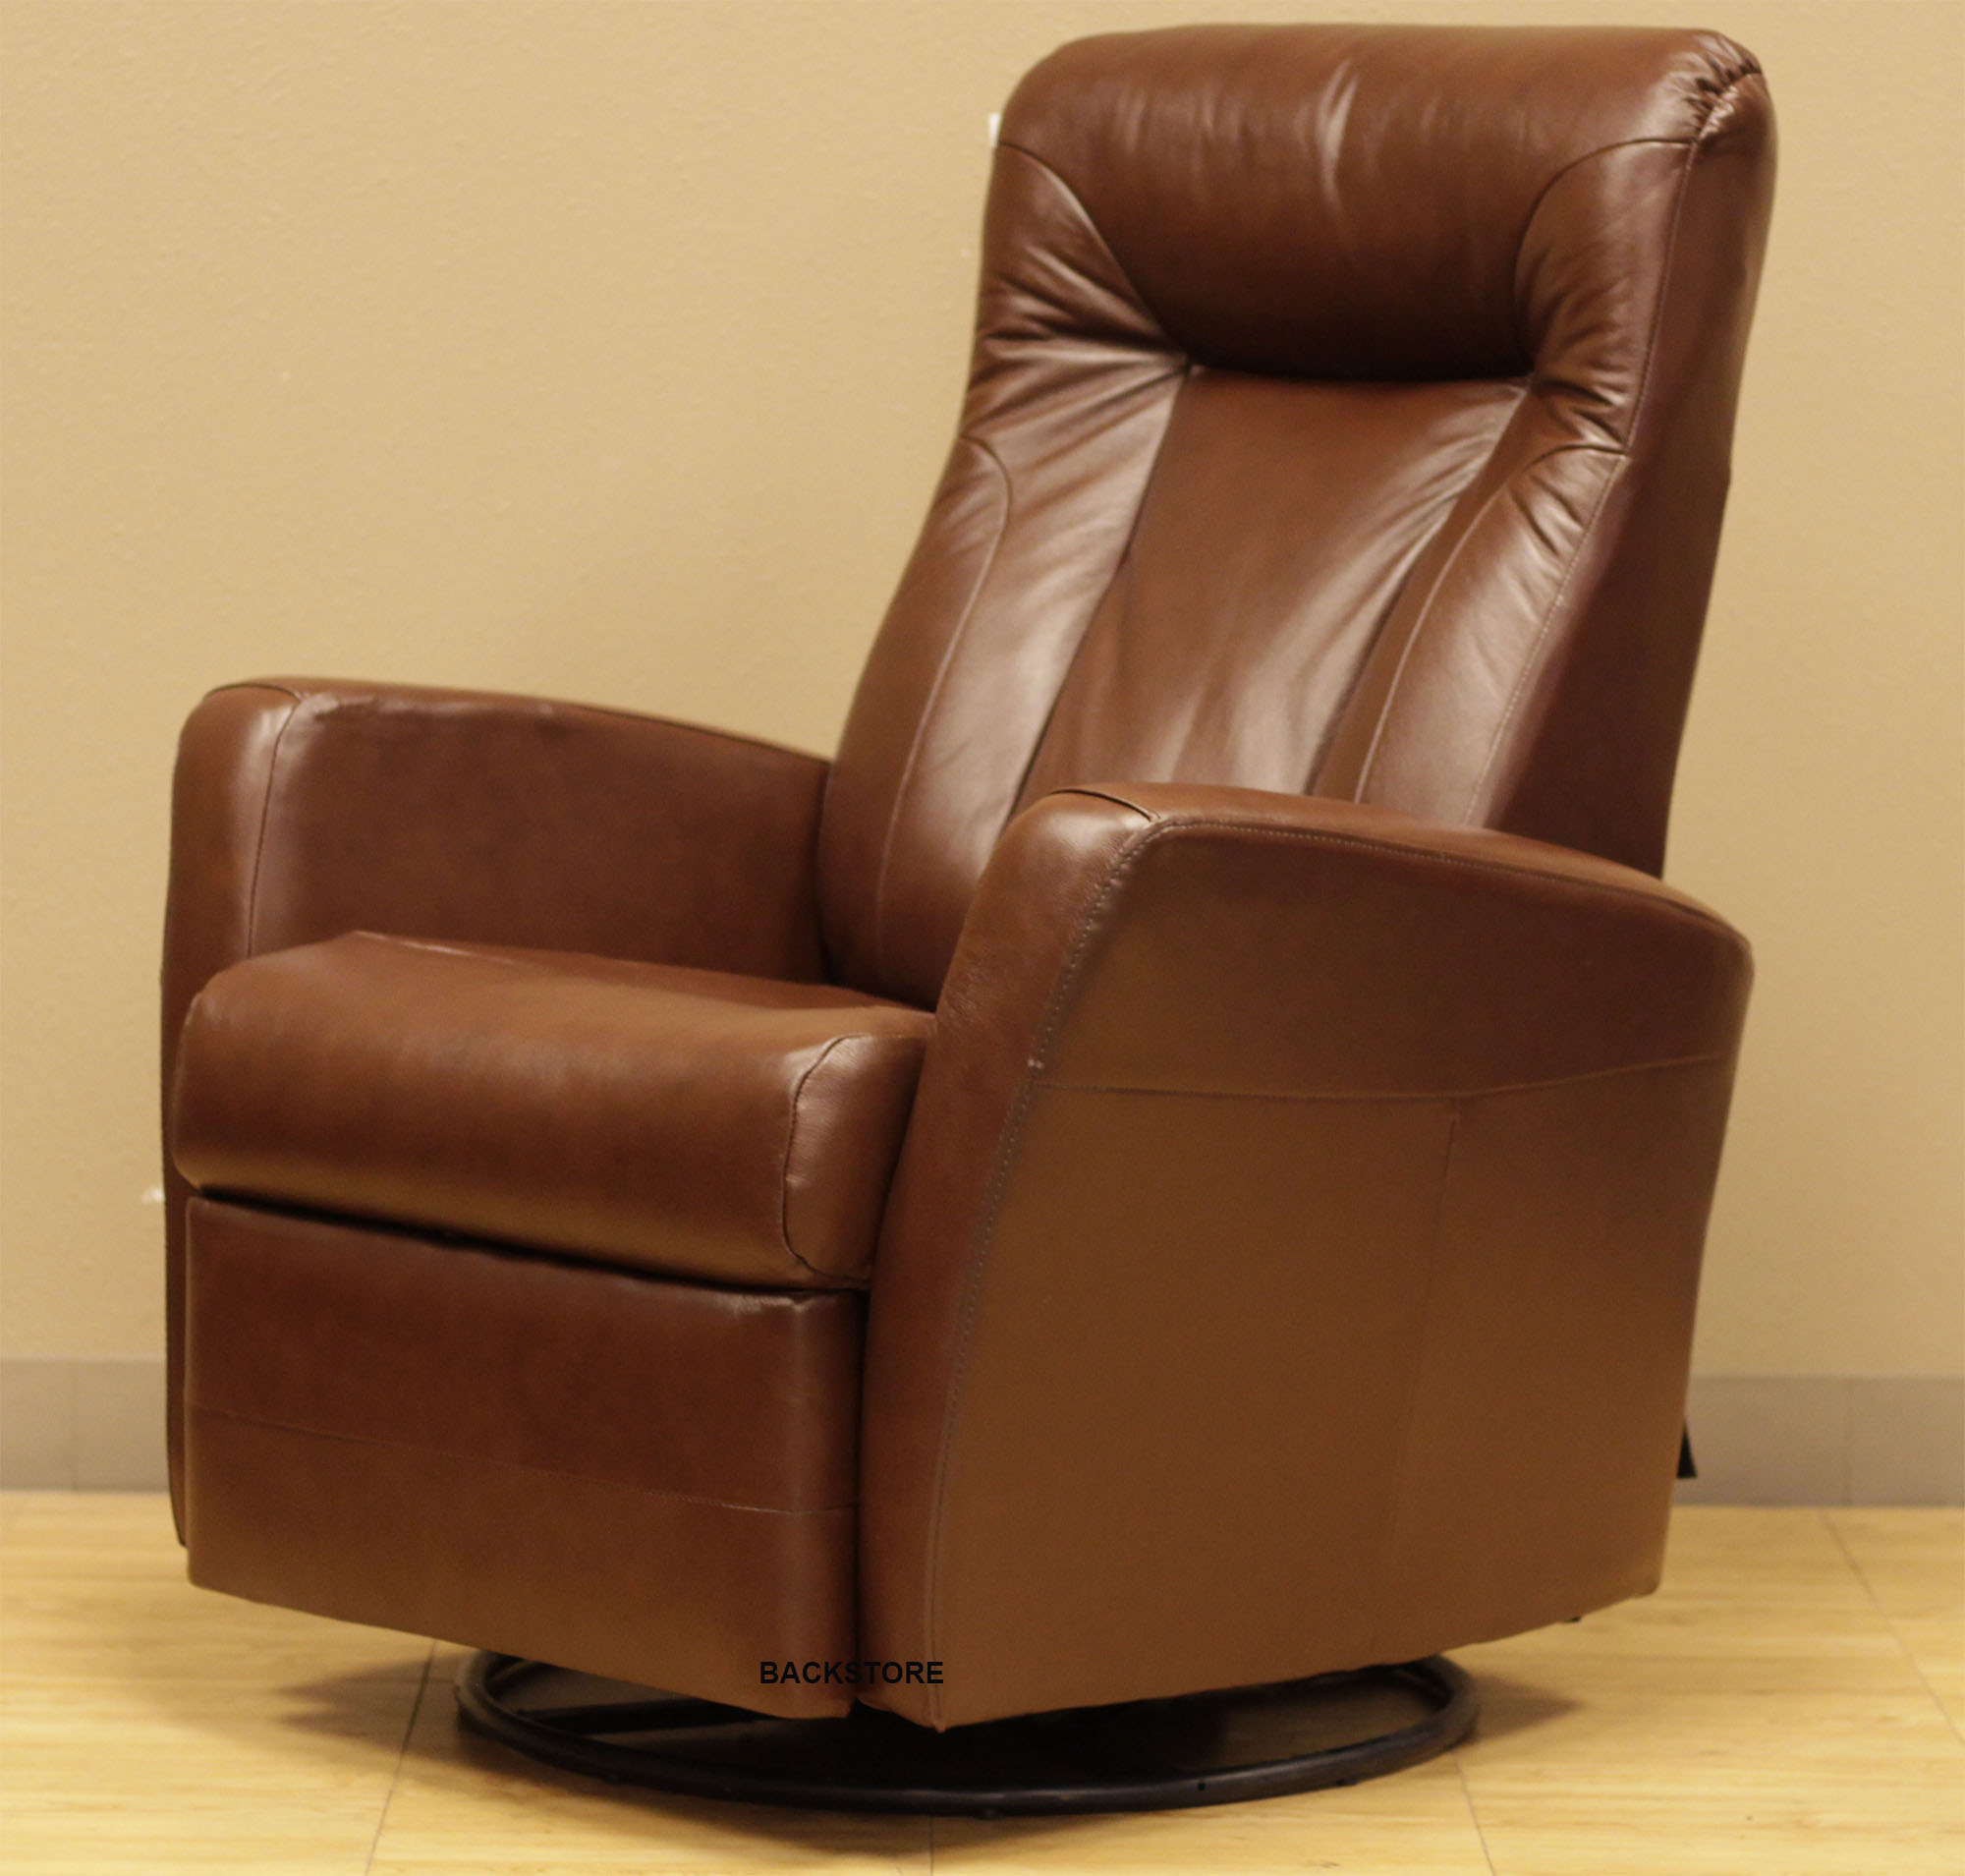 Barcalounger Grissom II Swing Rocker Glider Recliner Lounger Chair ...